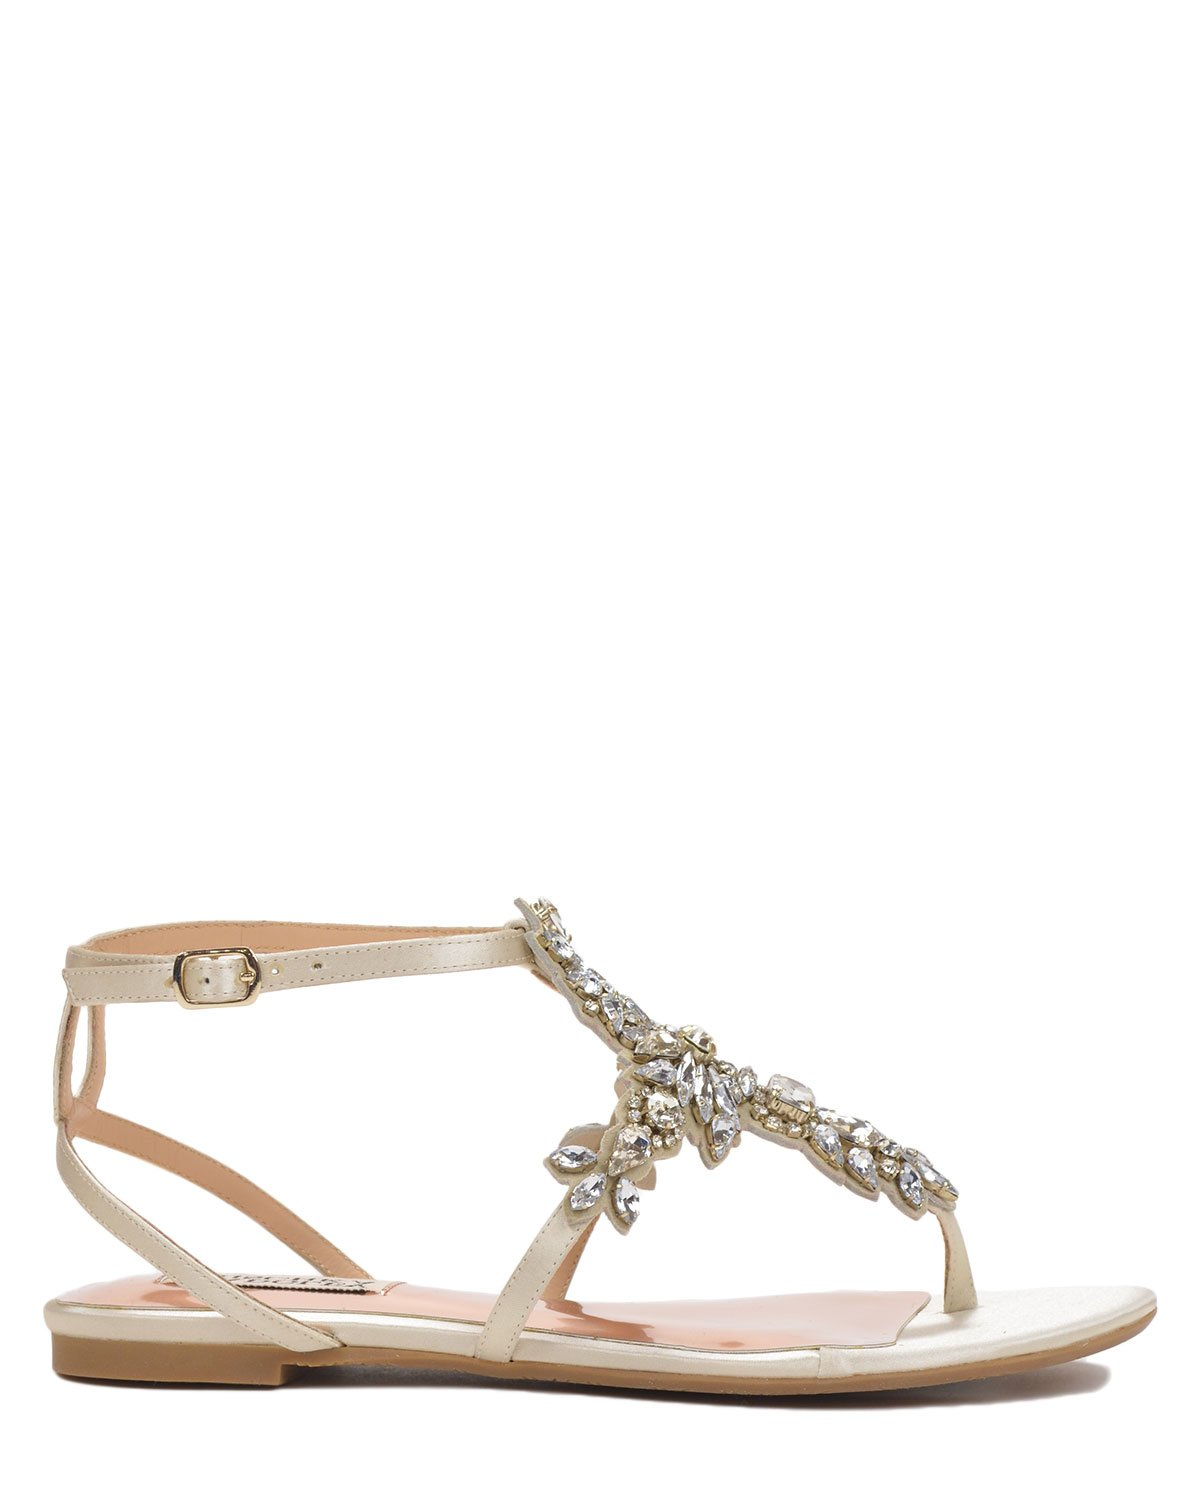 Wedding Shoes Australia: Badgley Mischka - Cara - Ivory